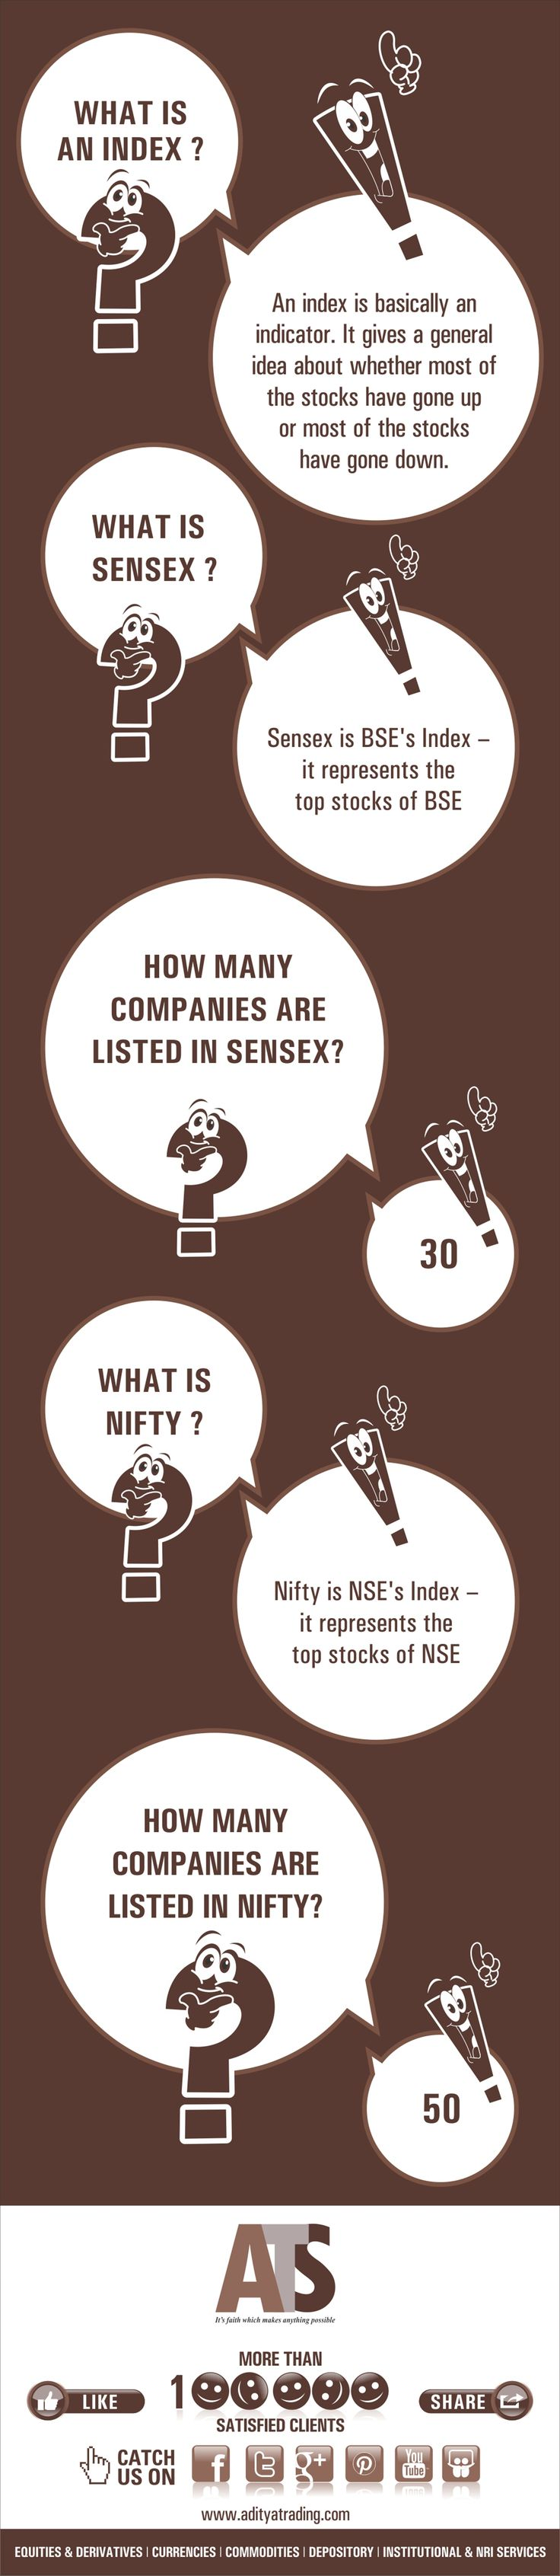 Get answers for : What is an Index / What is Sensex / How companies are listed in Sensex / What is Nifty / How many companies are listed in Nifty... #index #stockmarket #sharemarket #infographics #stockmarketinfographics  https://www.facebook.com/atsinvestments